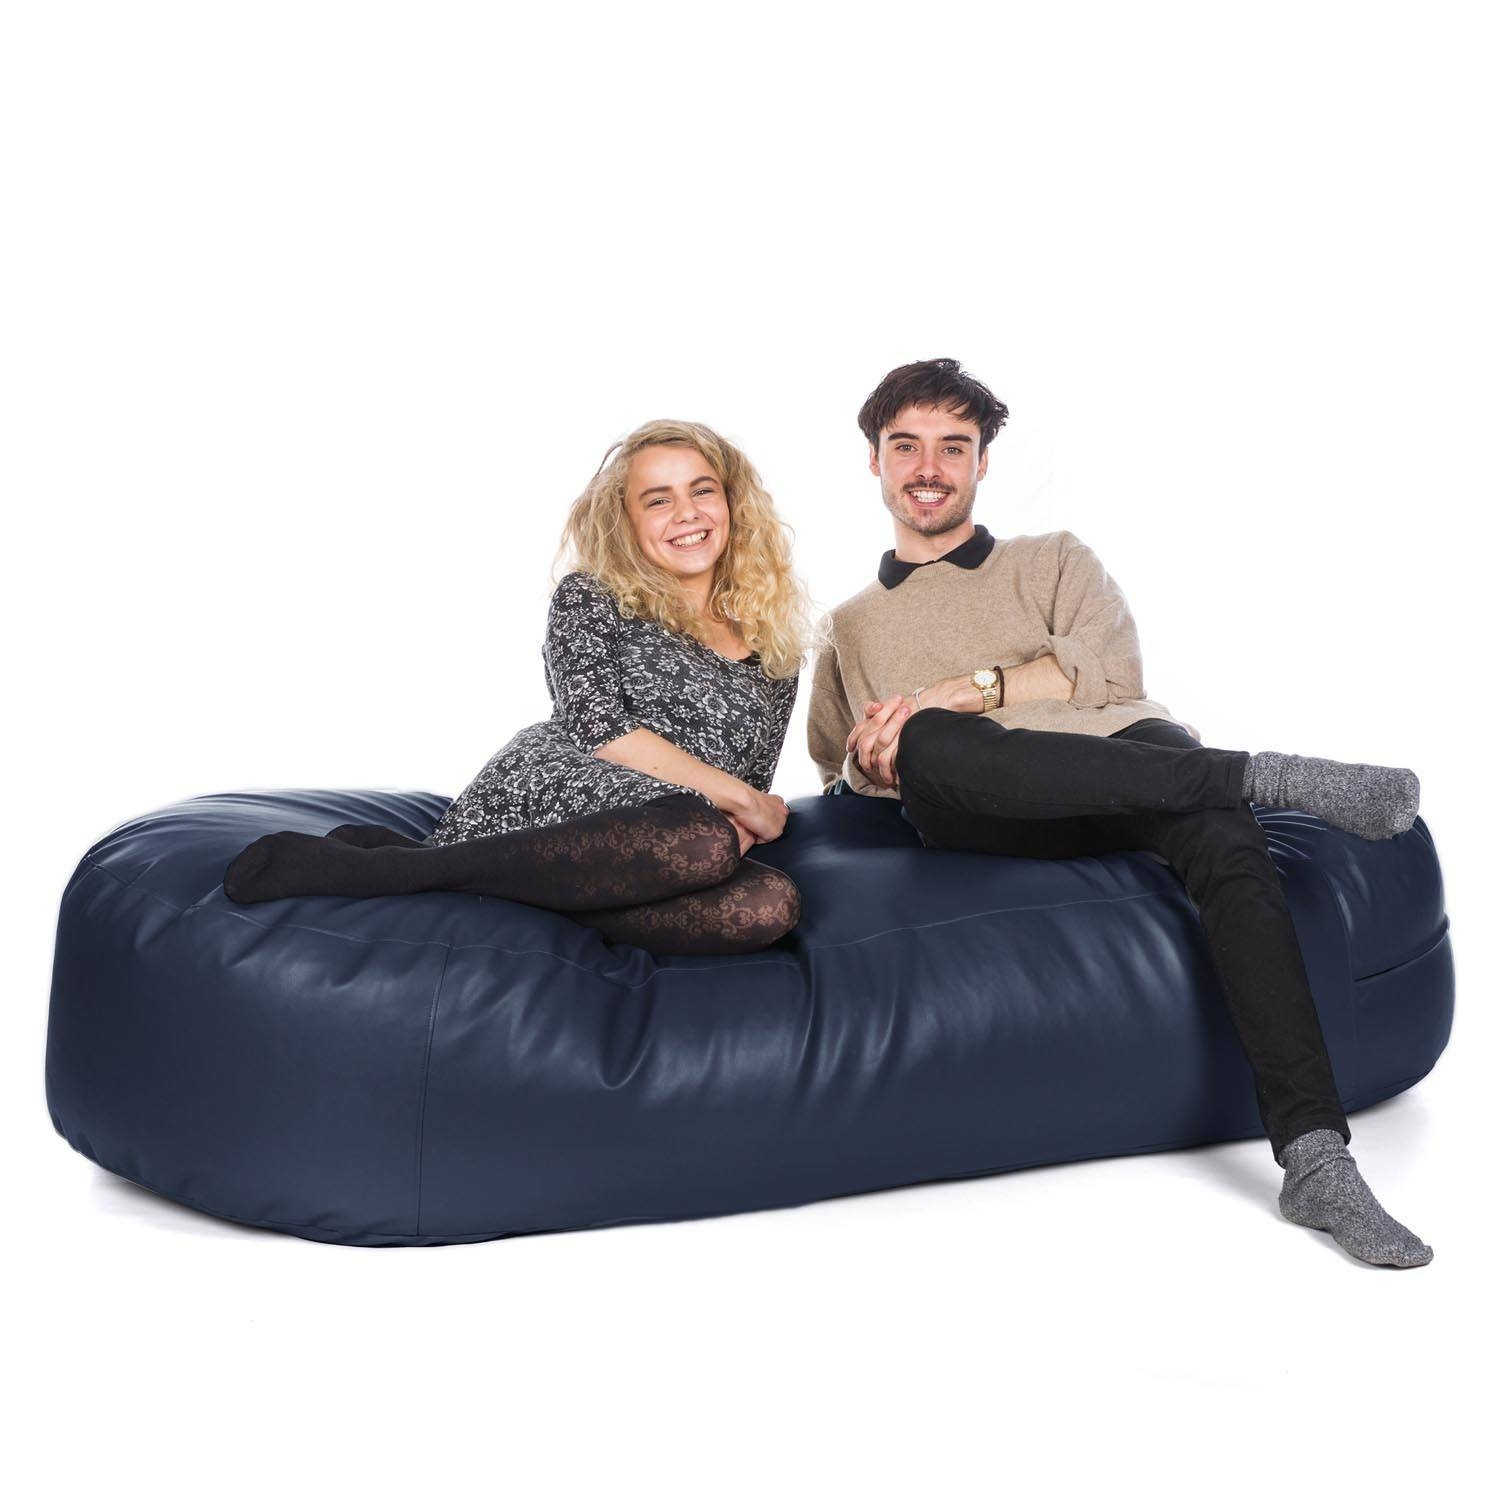 Bean Bag Sofa Beds | Uk-Manufactured - Greatbeanbags™ inside Bean Bag Sofas And Chairs (Image 5 of 15)